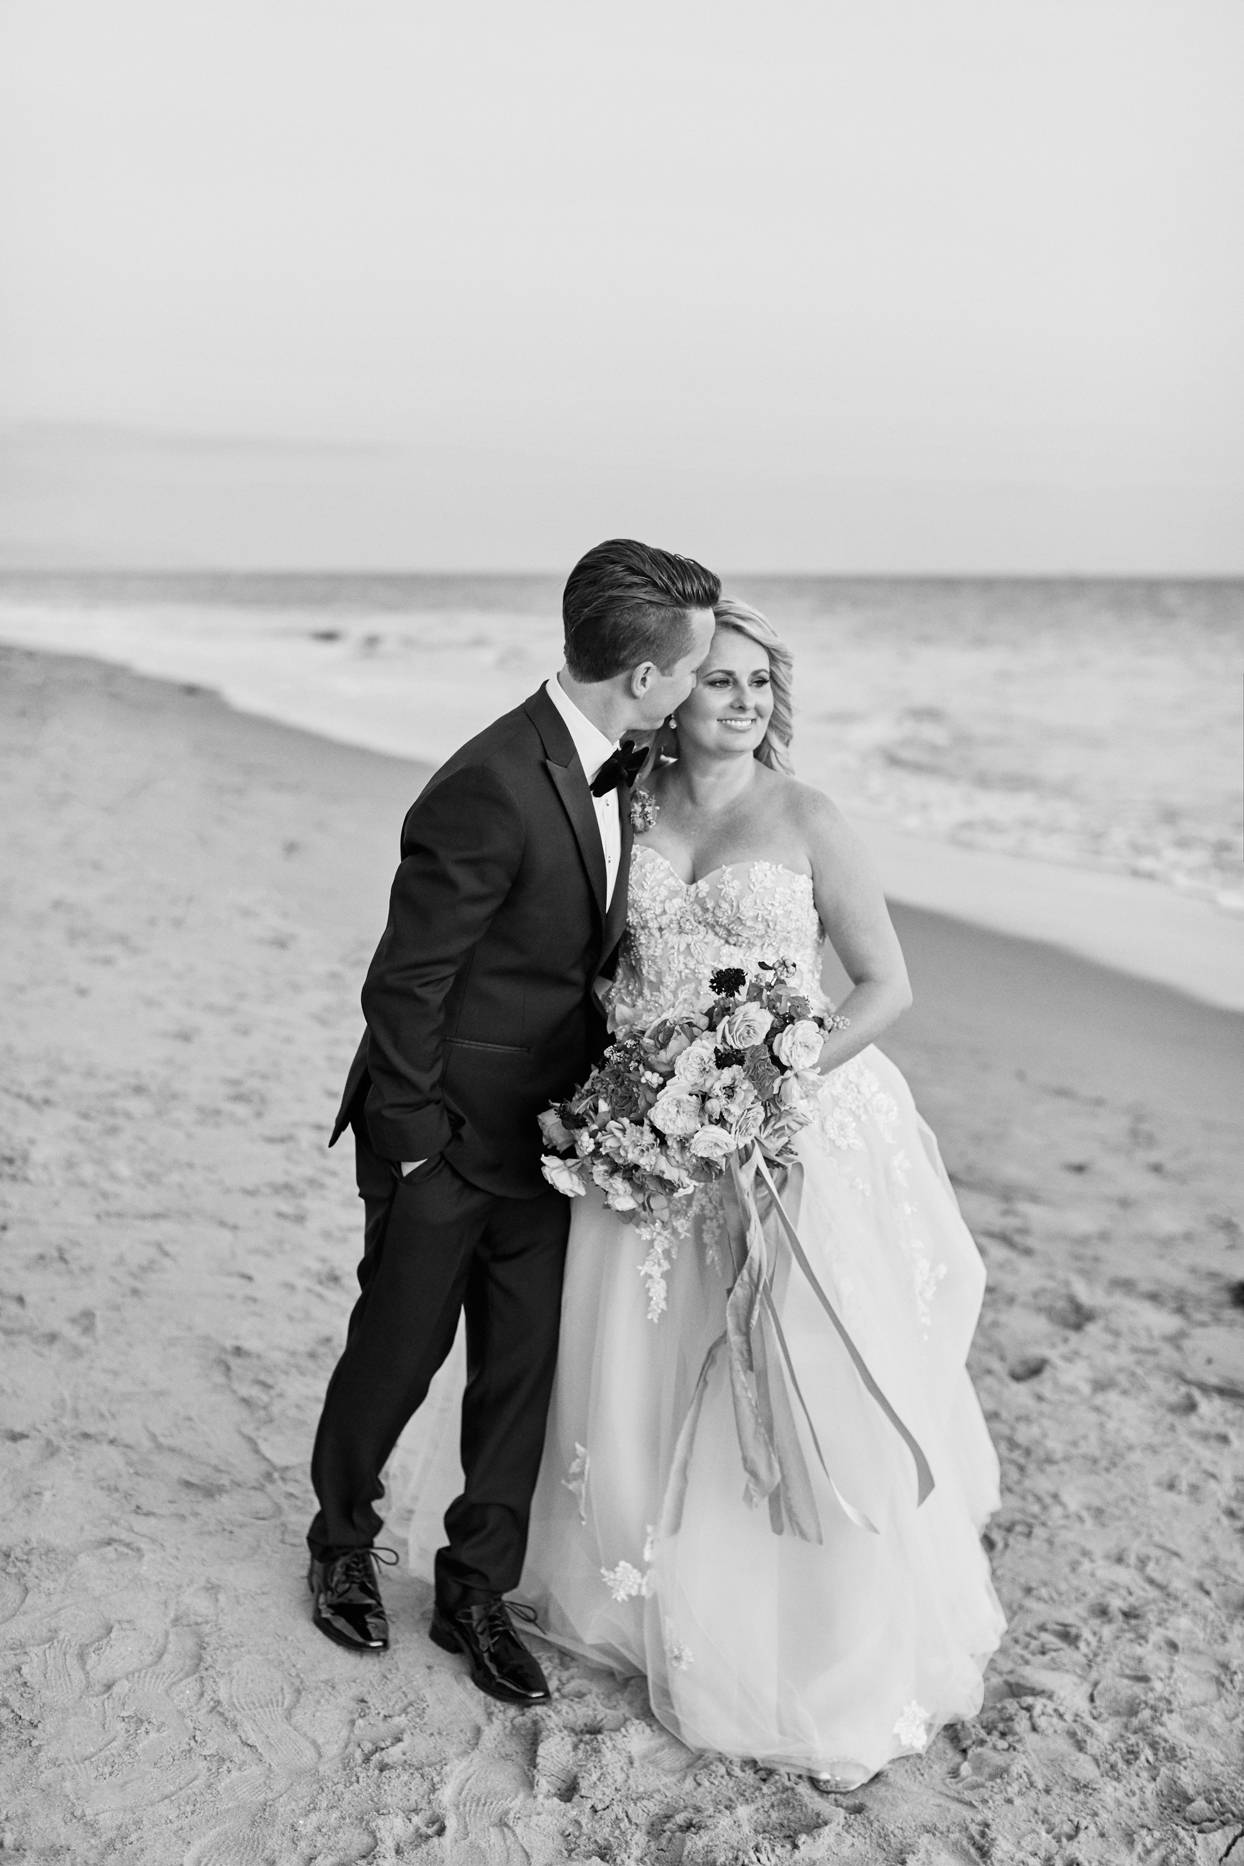 groom kisses bride on cheek while walking on the beach